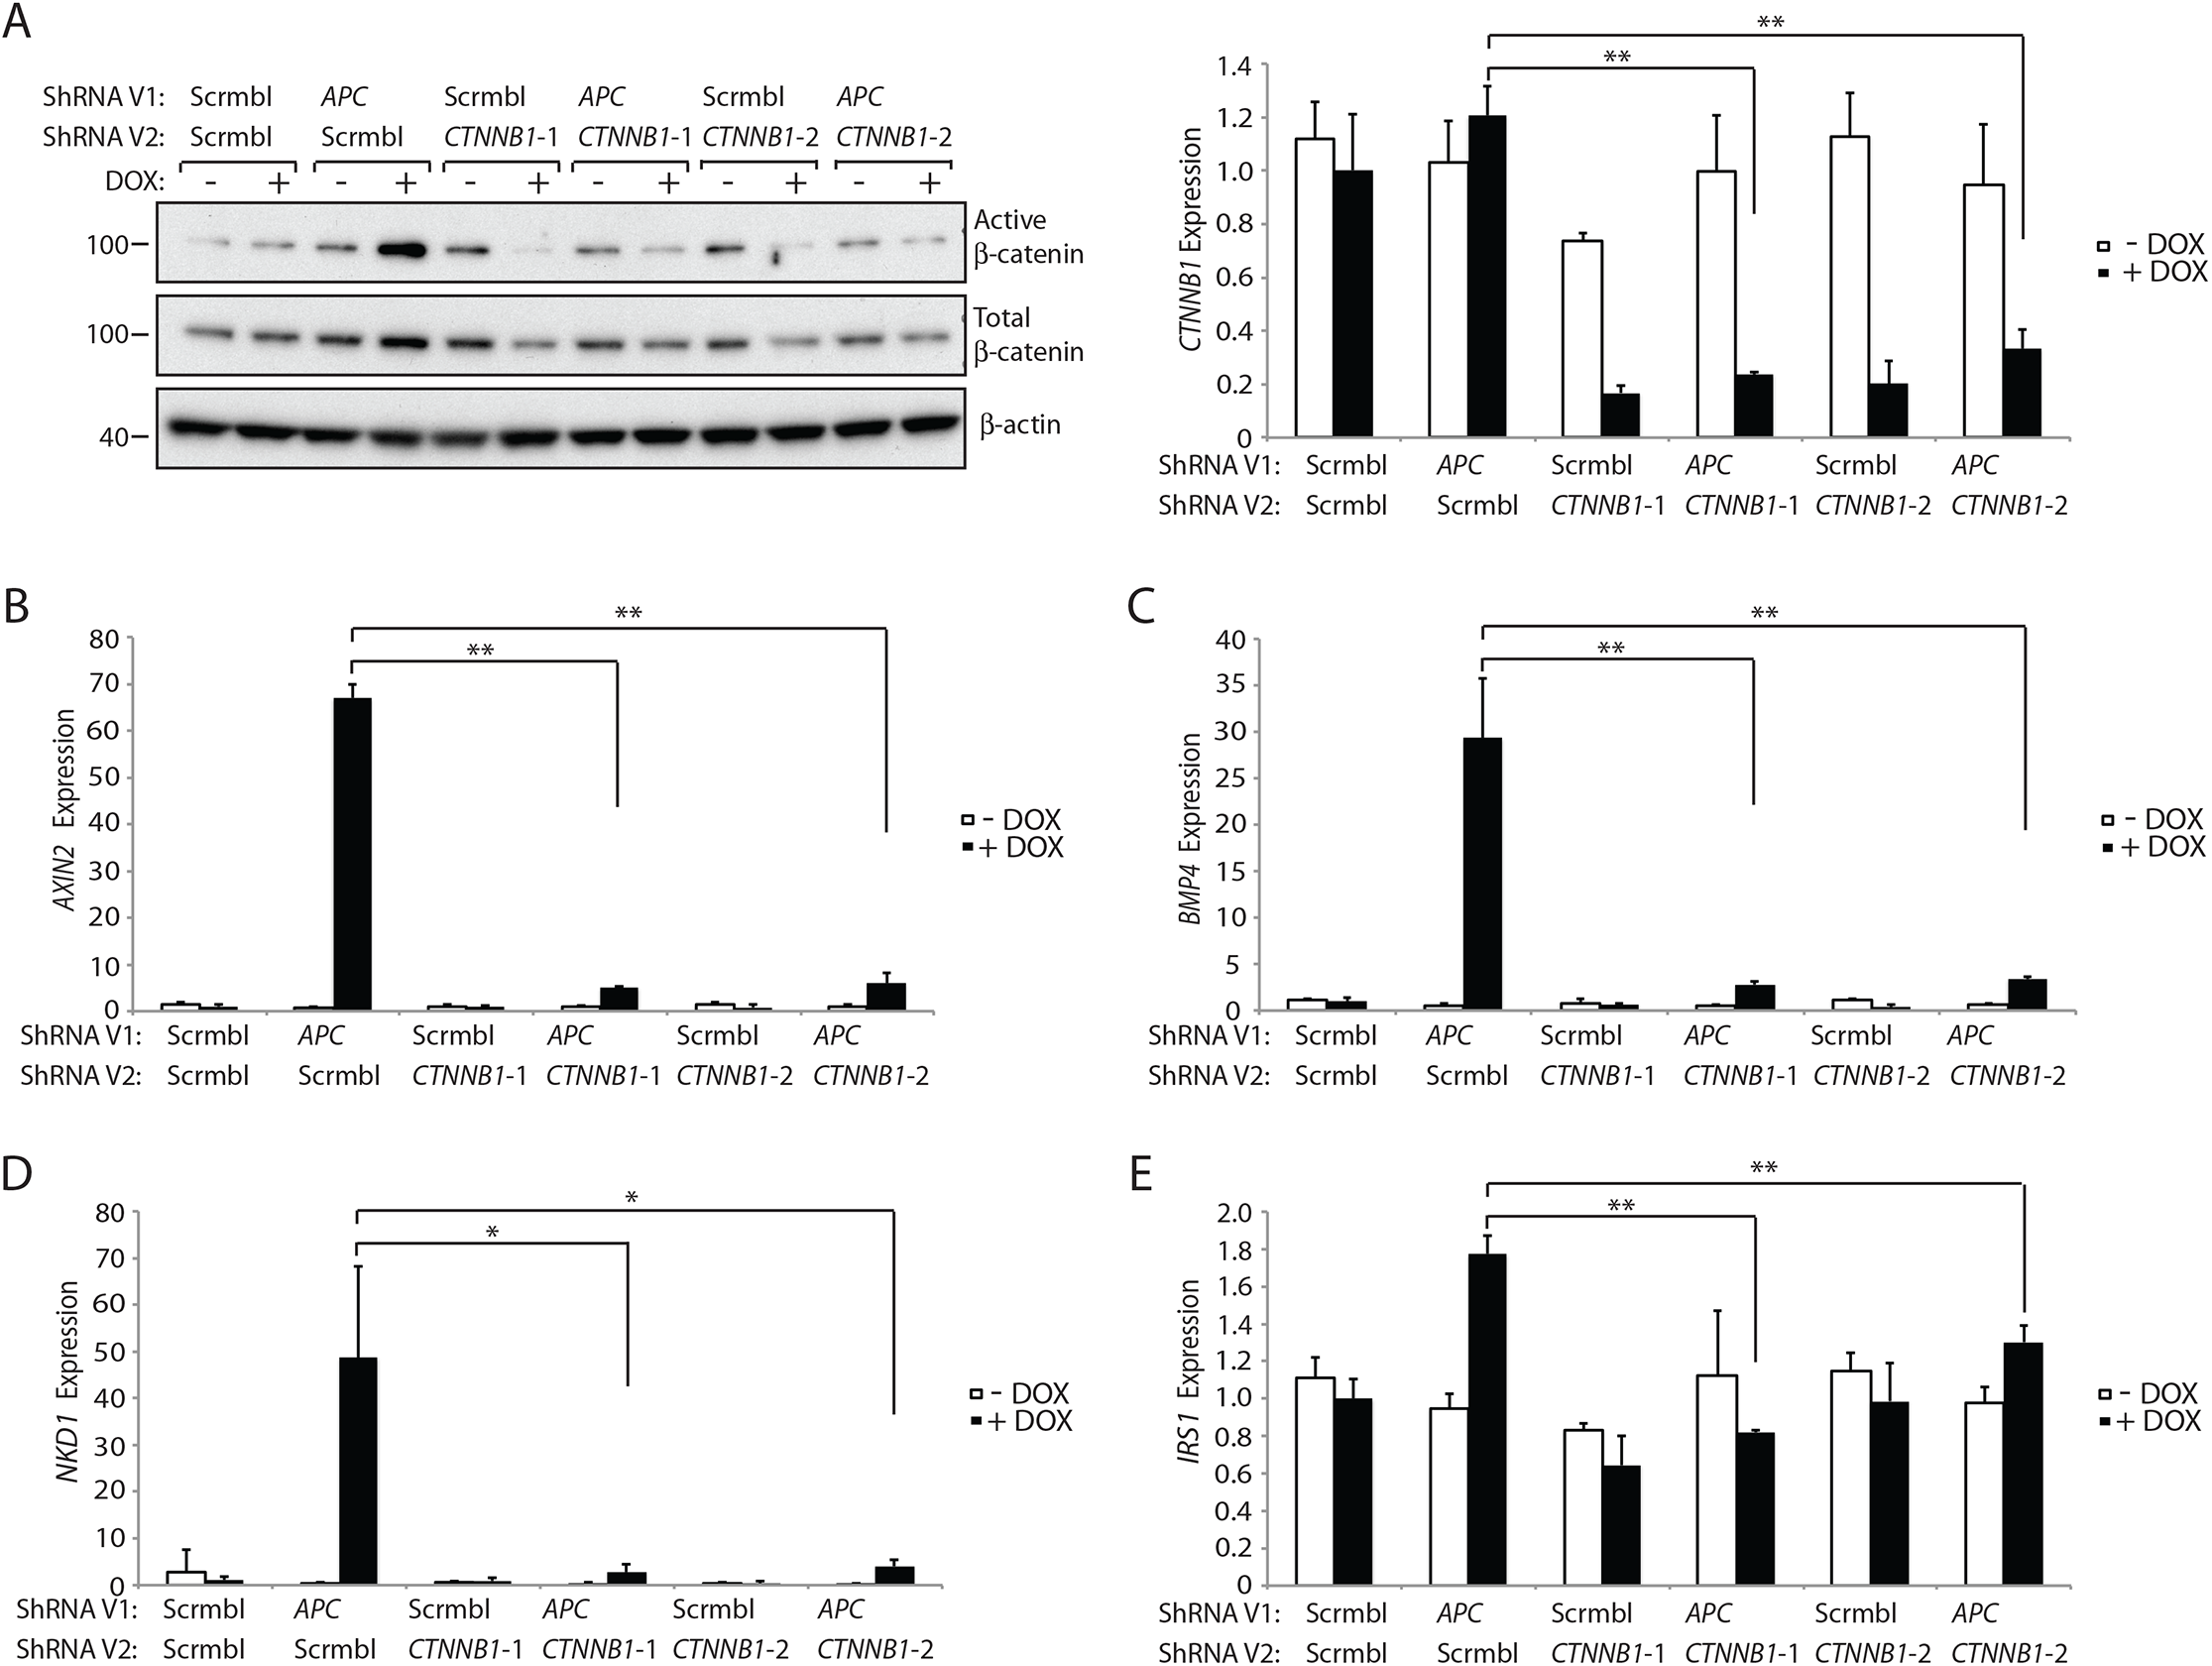 Inhibition of β-catenin expression by CTNNB1 shRNAs dramatically reduces the increase in the active pool of β-catenin and β-catenin/TCF-regulated target gene expression seen following <i>APC</i> inhibition in HCECs.